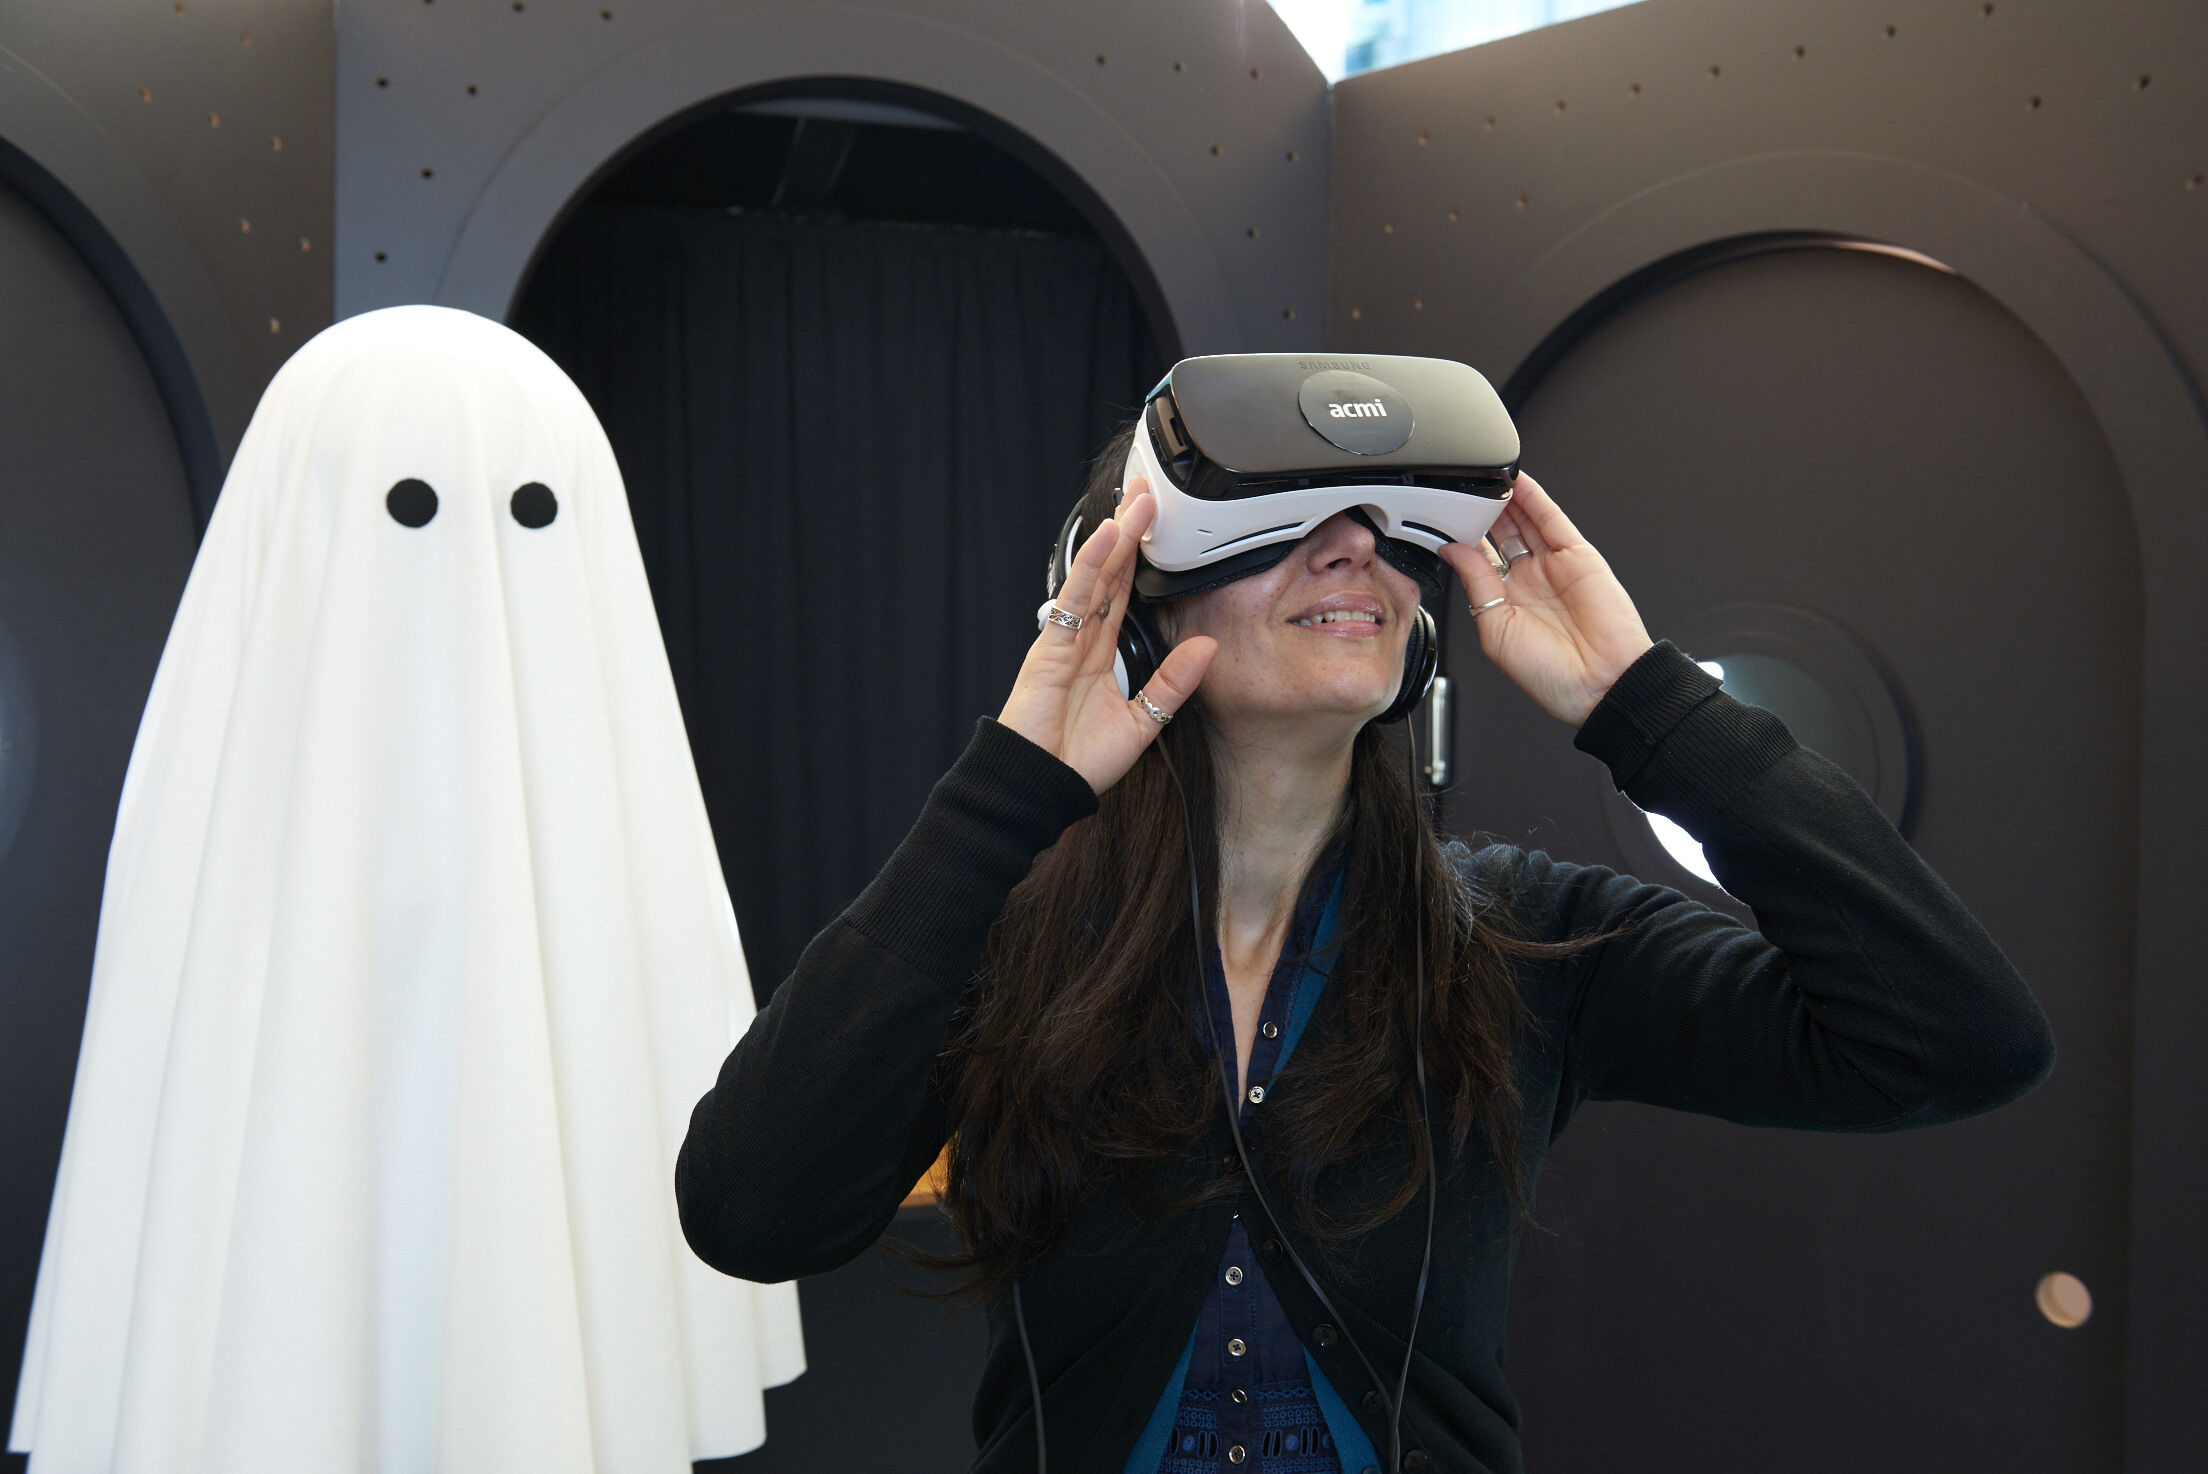 Ghosts%20Toast%20and%20the%20Things%20Unsaid%20at%20ACMI%20Oct%202016_1